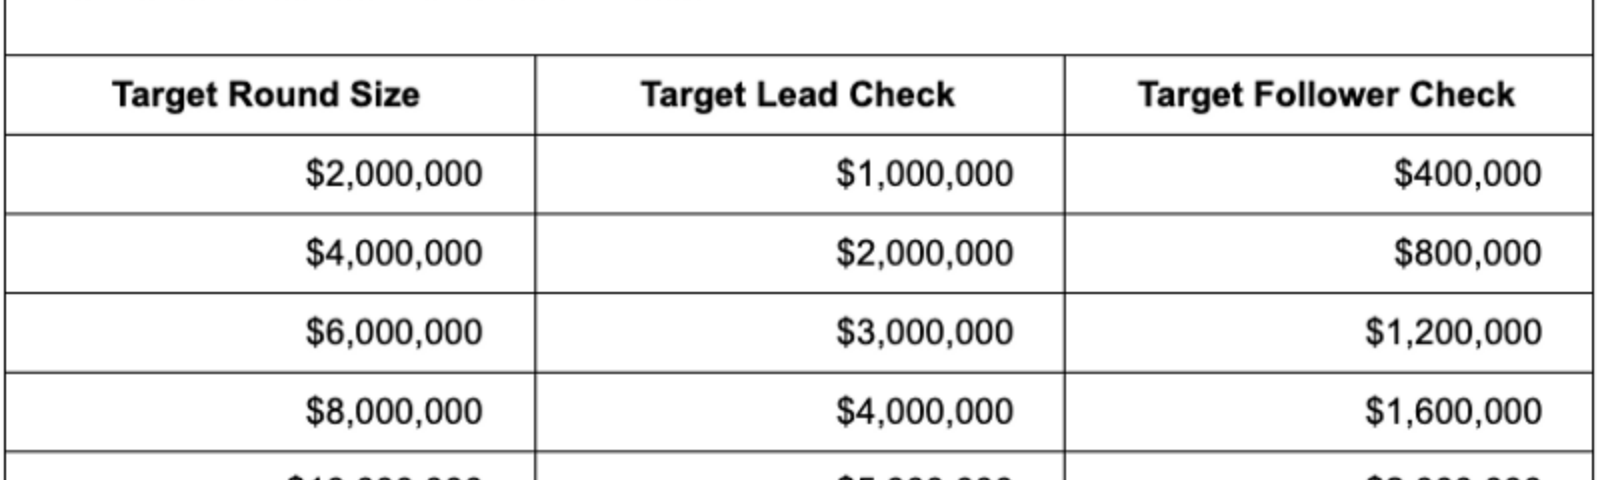 Target Check Size Cheat Sheet: what to expect from leader and follower investors in a round.